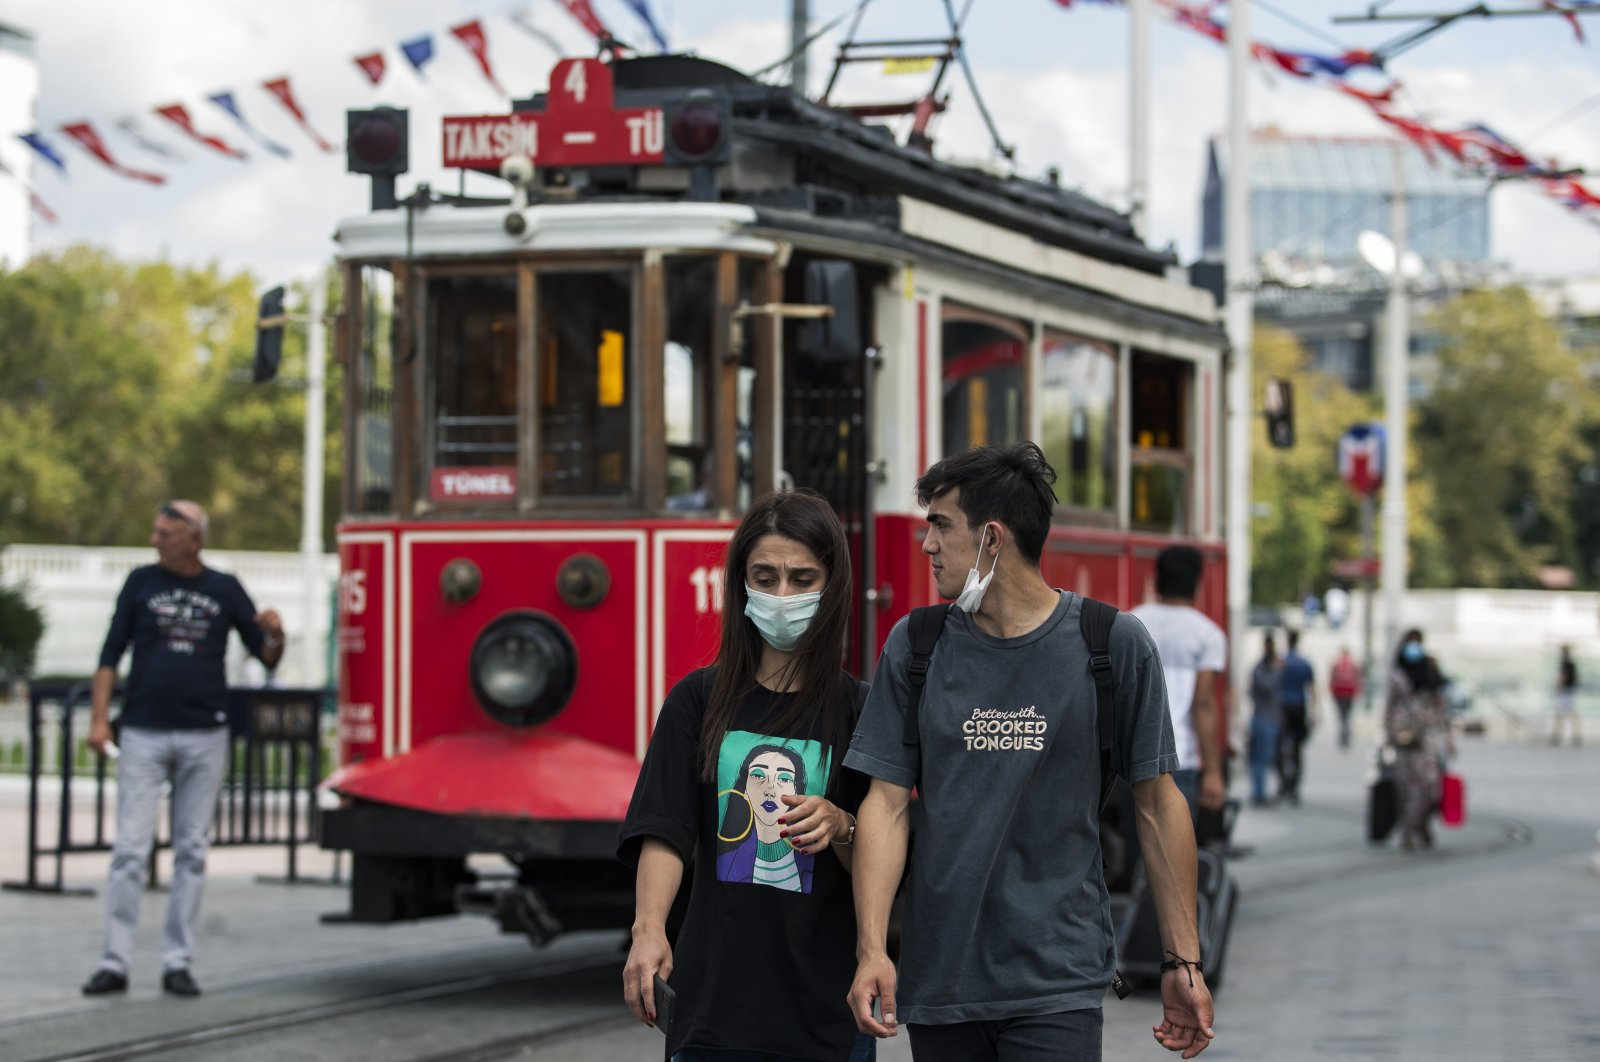 A woman wearing a protective mask and a man with a mask below his chin walk on a street in Istanbul, Turkey, Sept. 5, 2020. (DHA Photo)